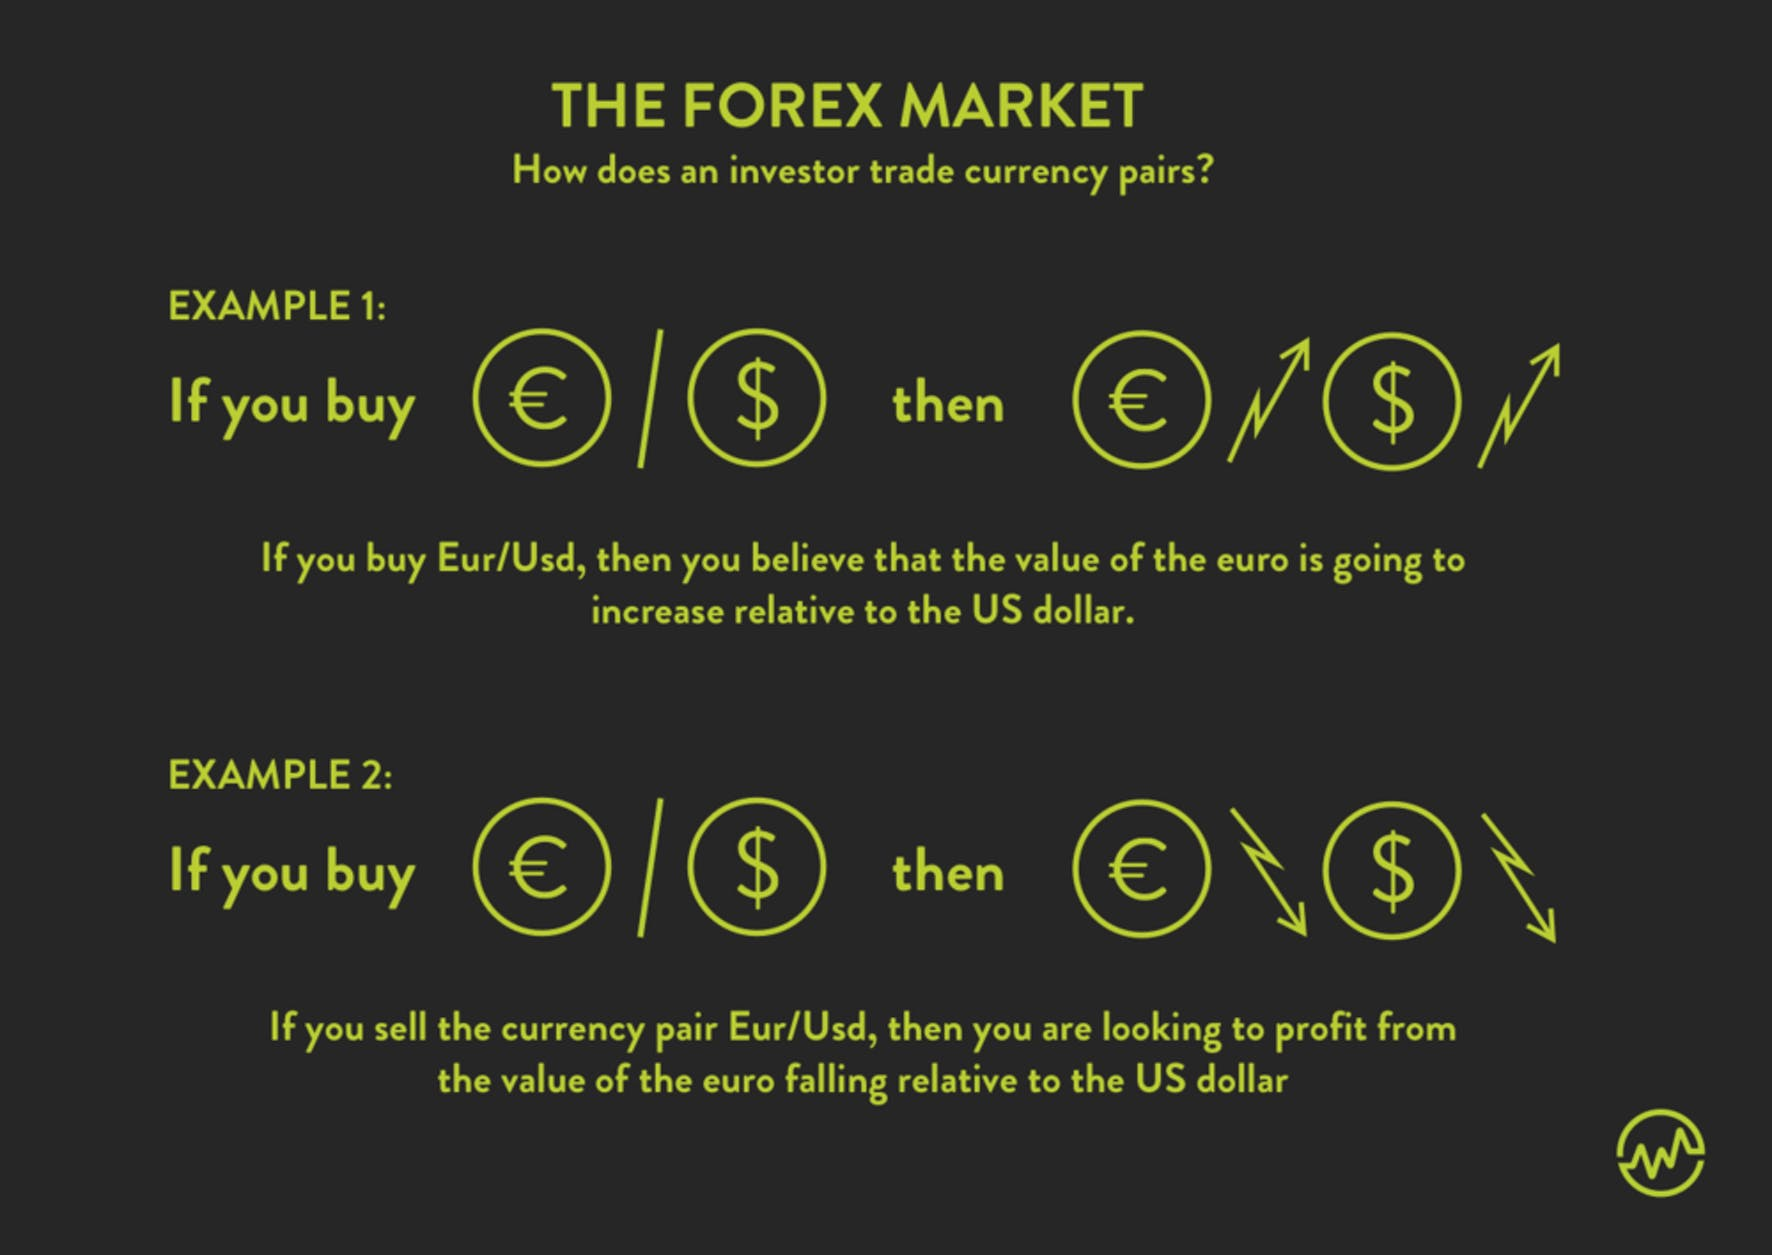 Forex for beginners: How an investor trades currency pairs